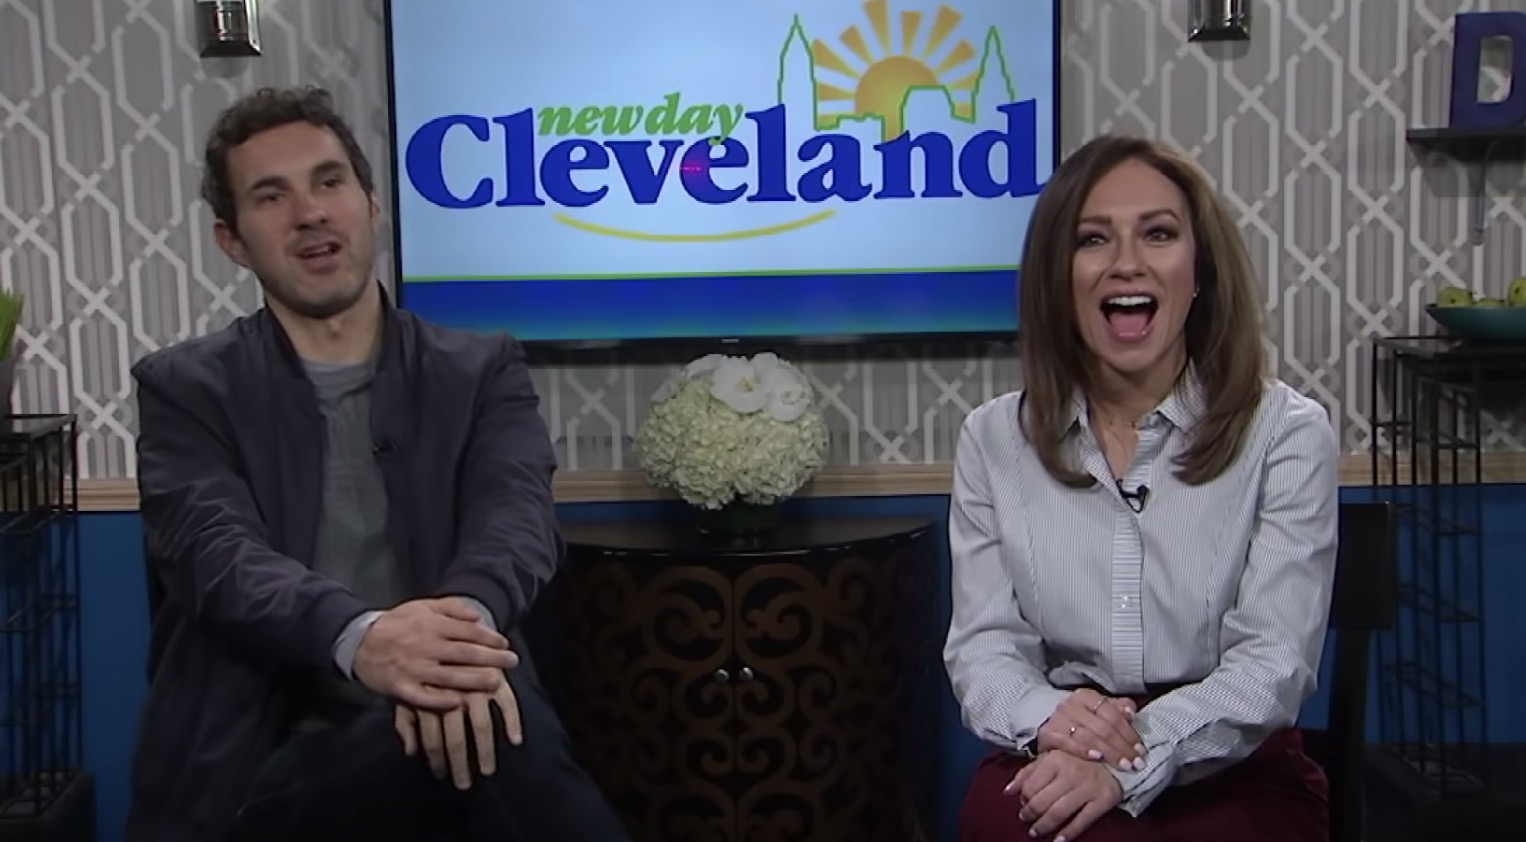 'New Day Cleveland' Had A Comedian On For A Segment, And Hoo Boy, It Got Weird